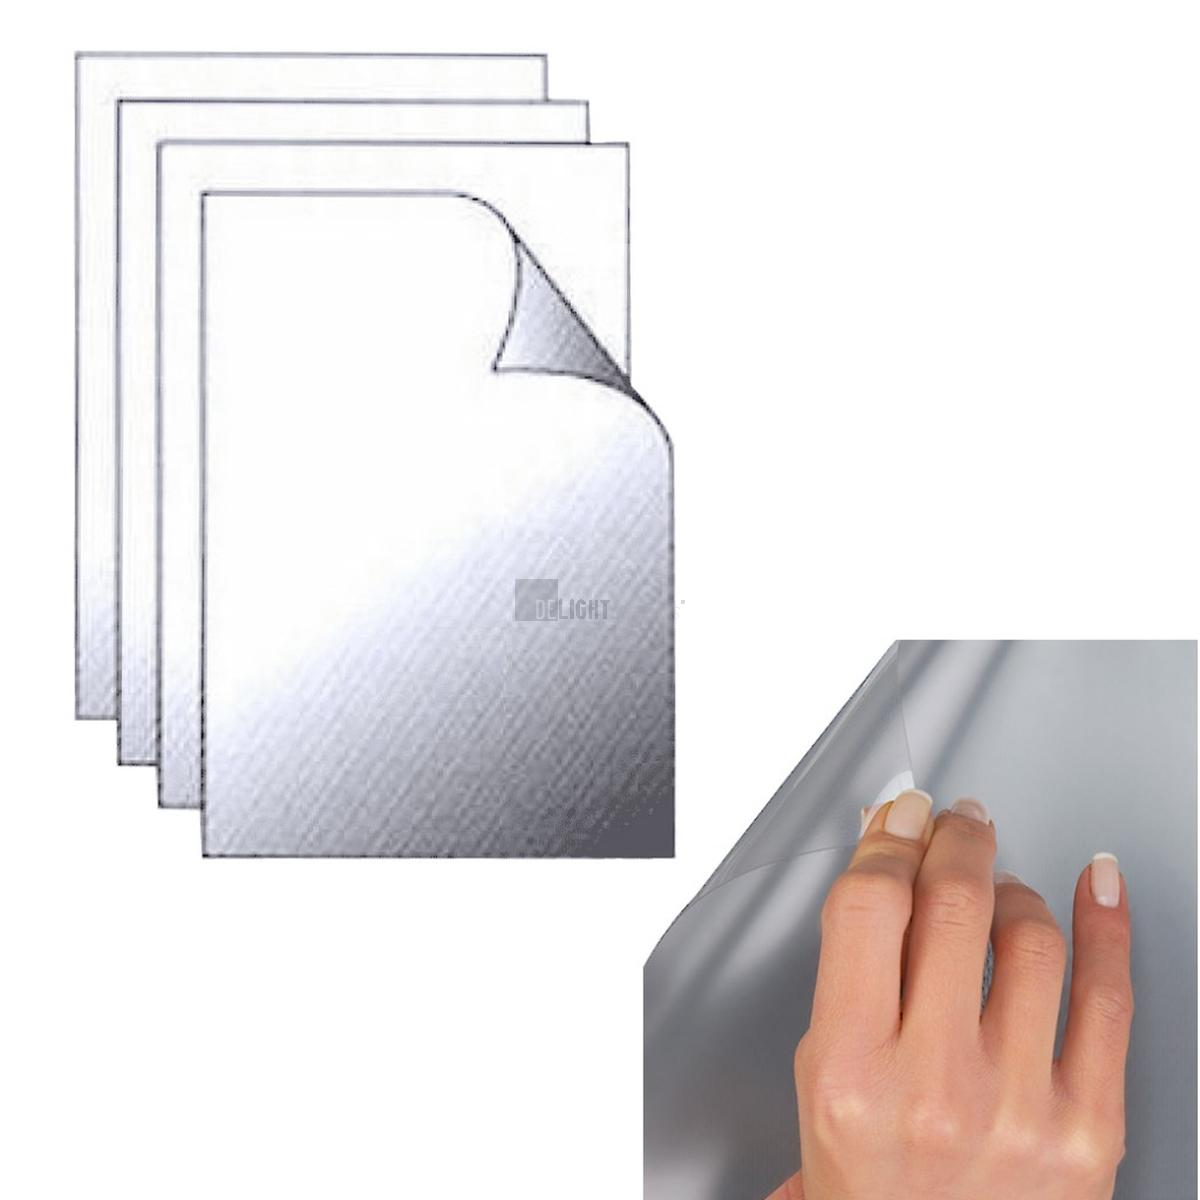 Anti-reflective Protective Film in DIN formats